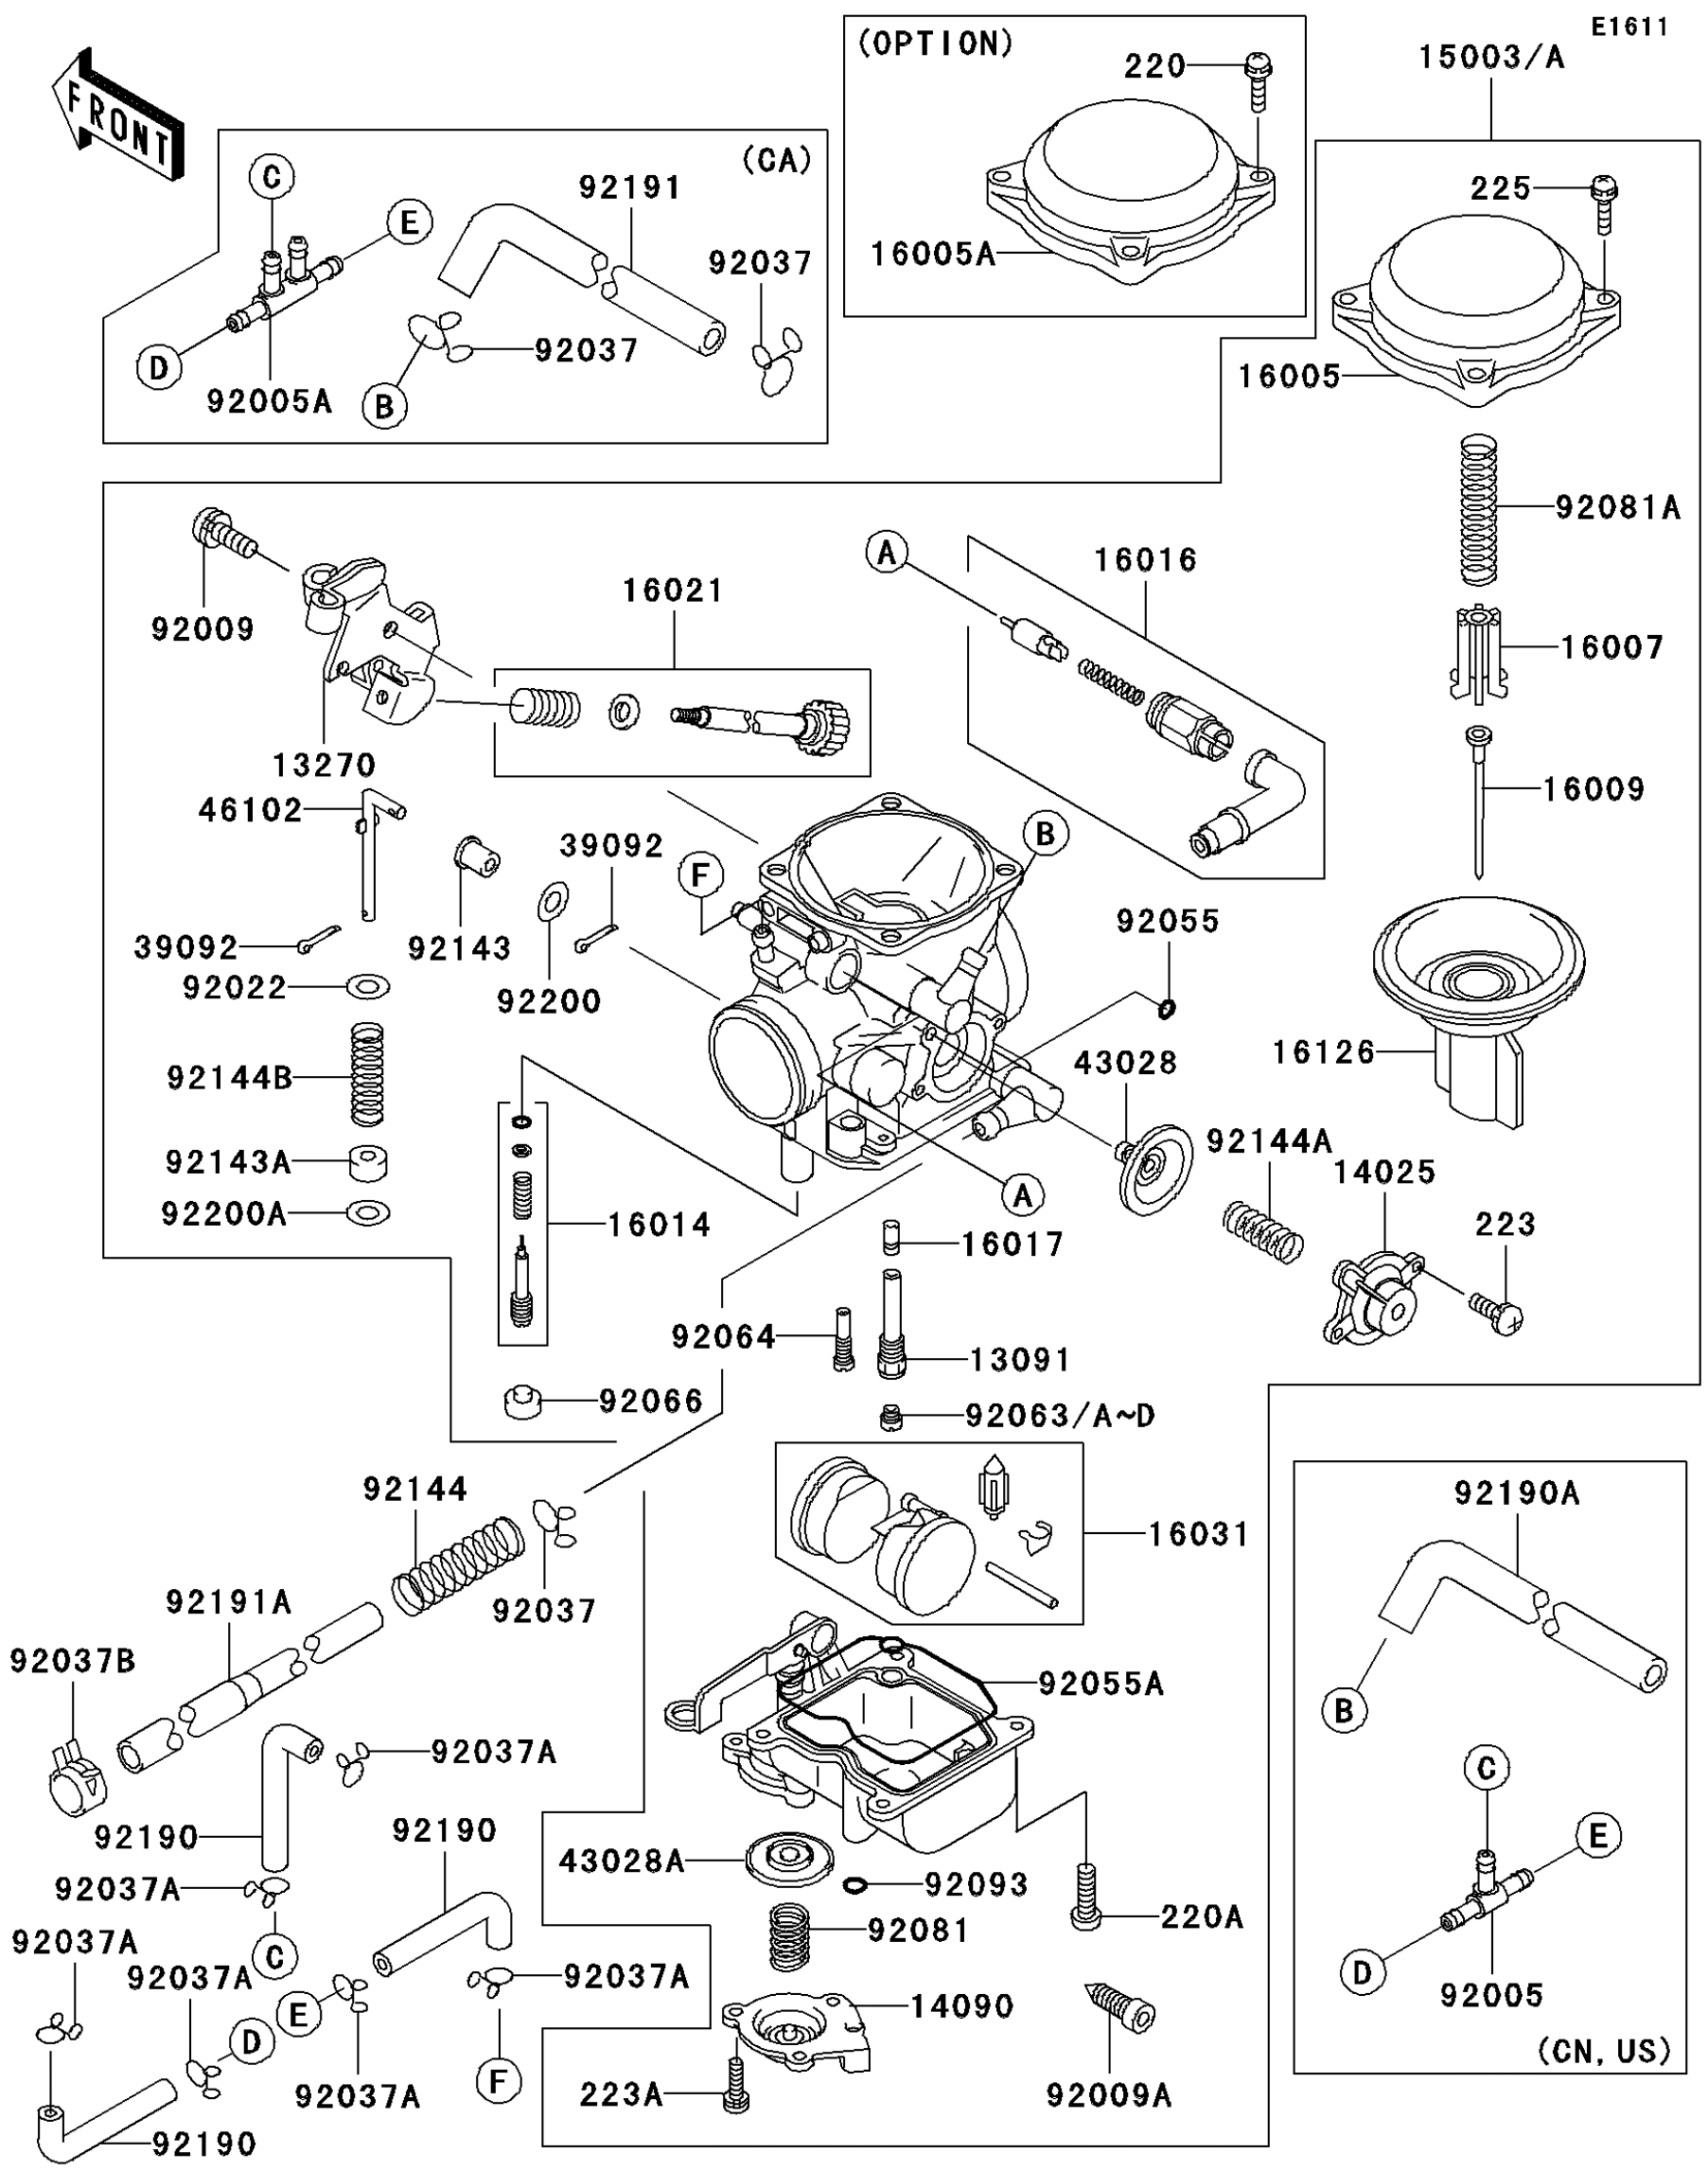 yamaha v star wiring diagram  yamaha  free engine image